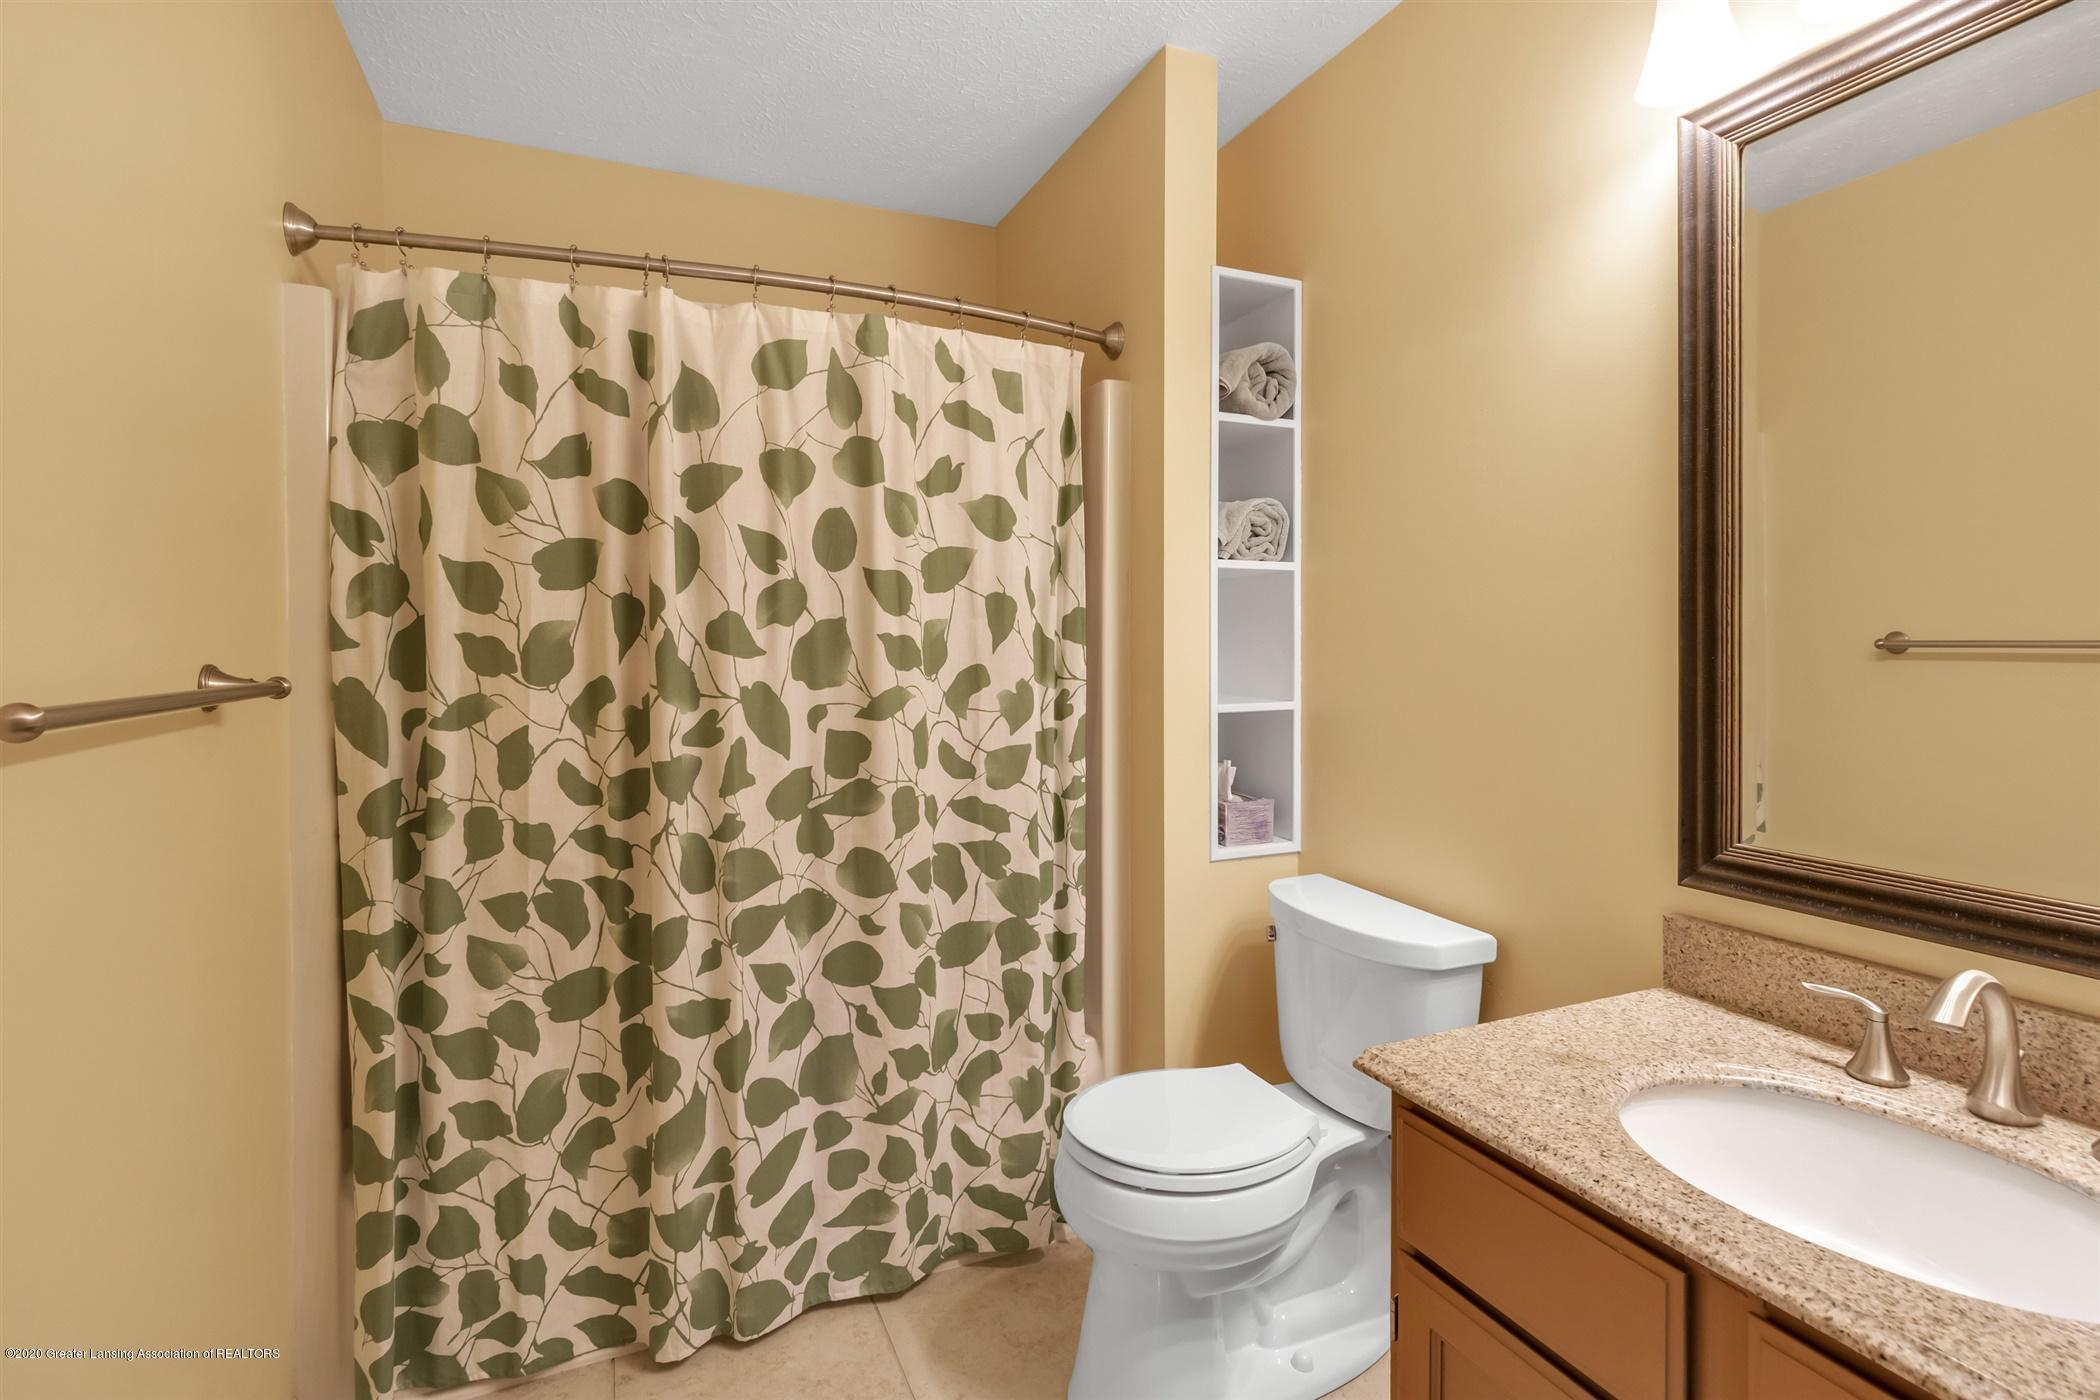 2945 Whistlewood Way - 30-2945Whistlewood-WindowStill-Real - 30